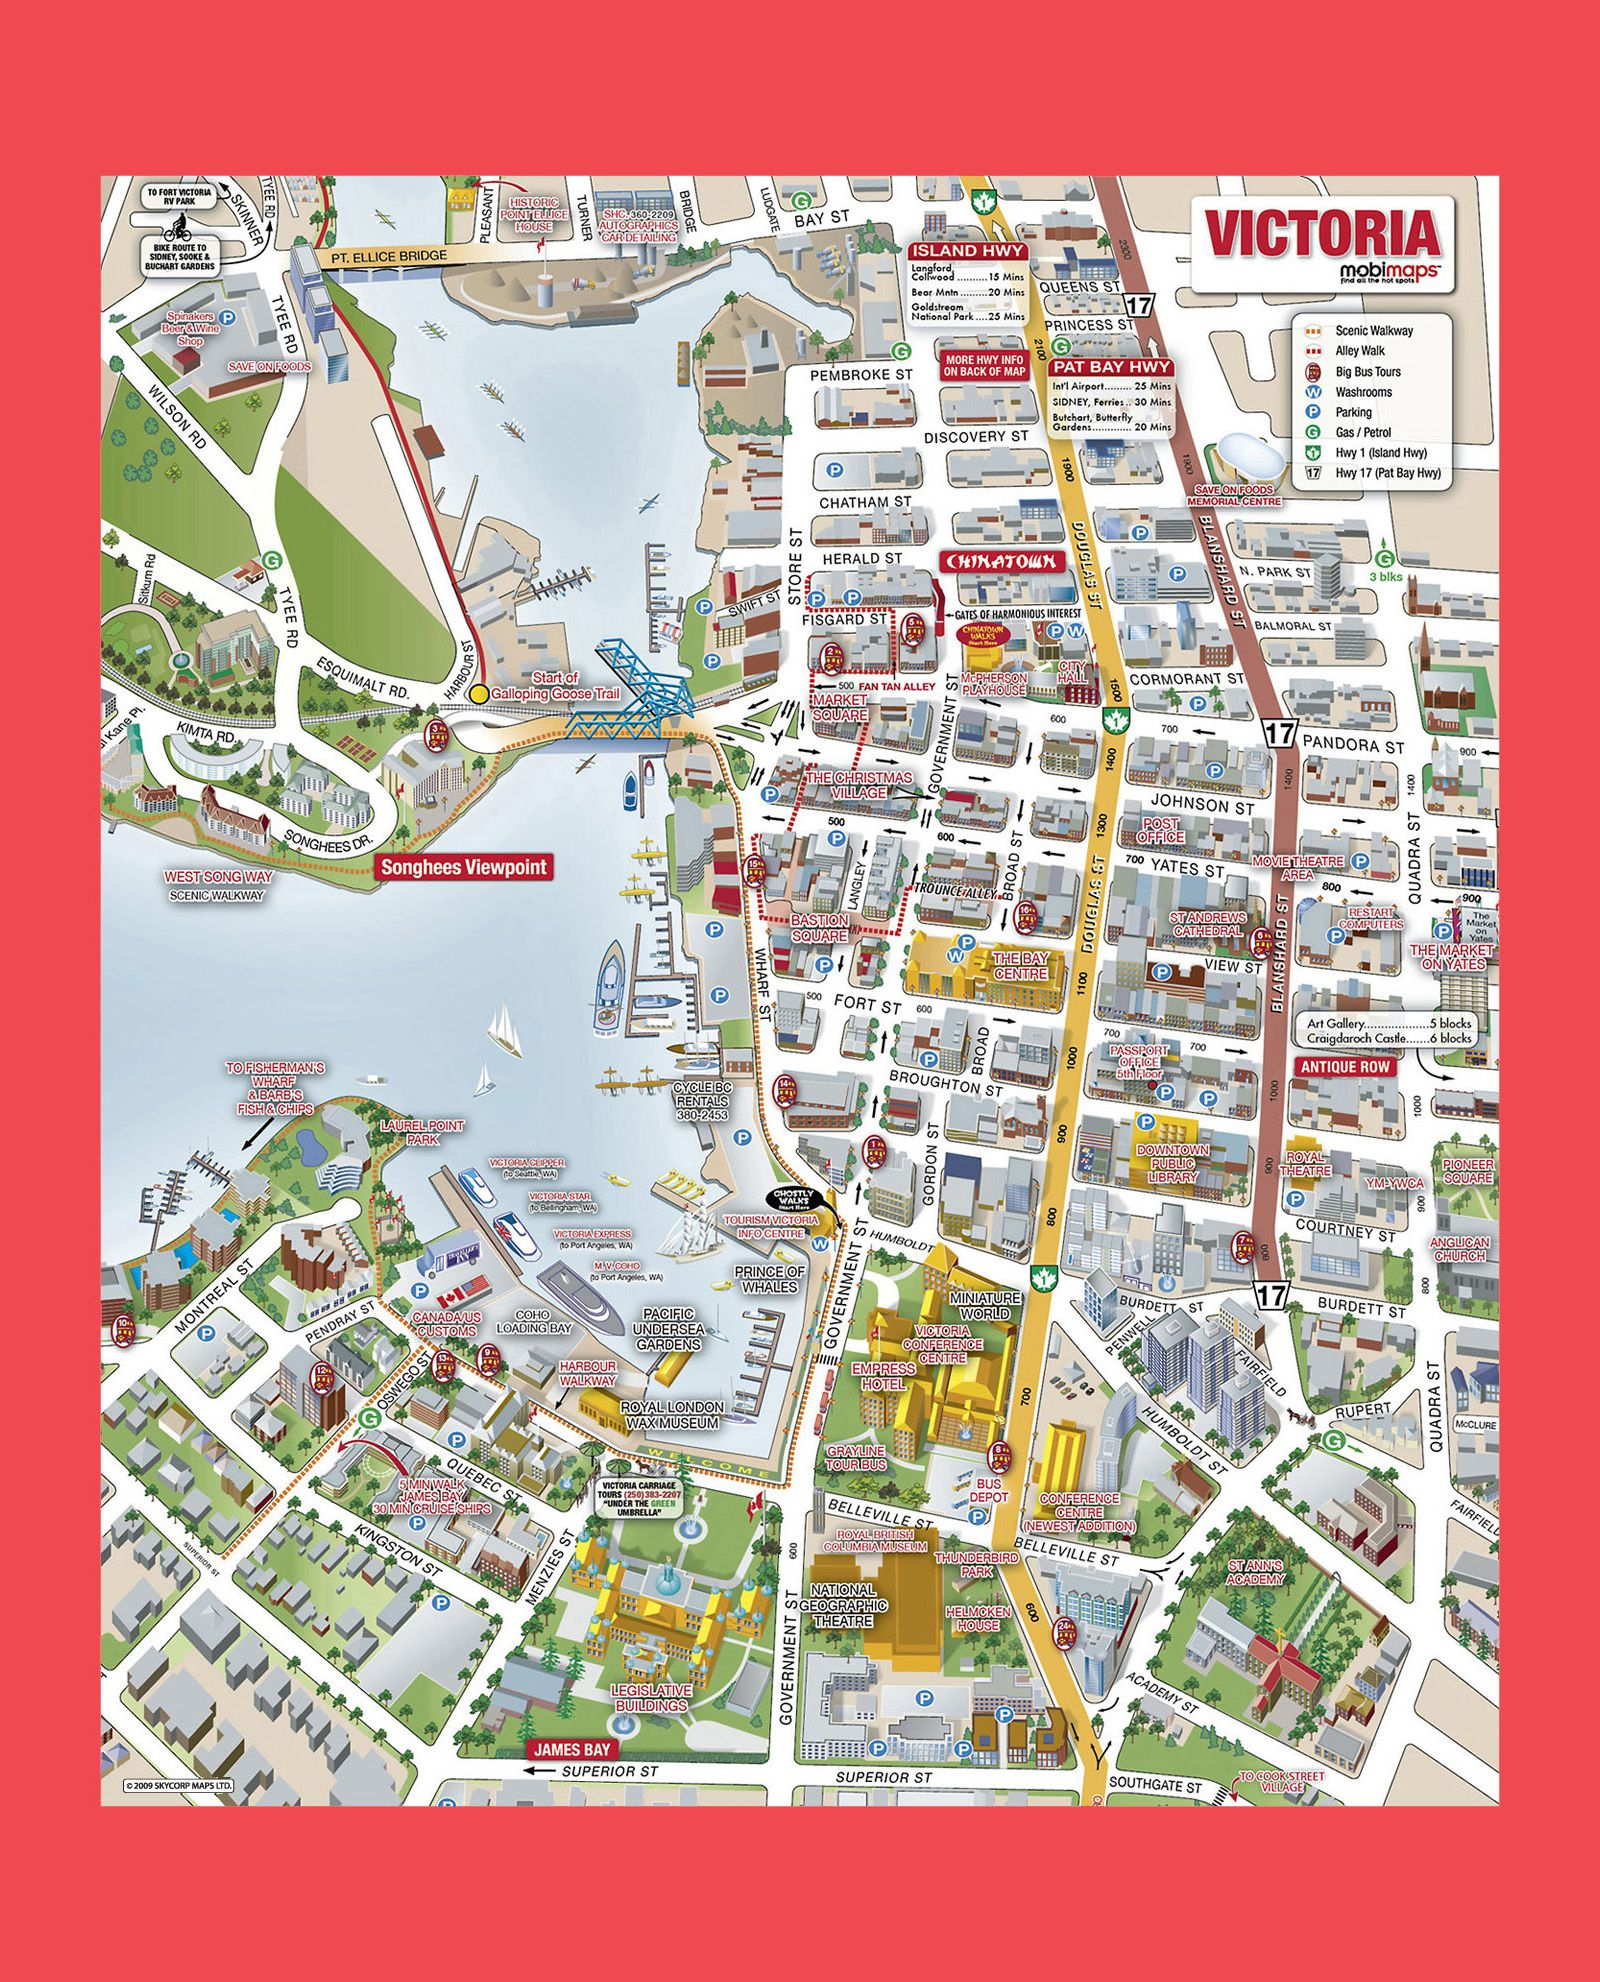 Map Of Victoria Australia With Cities.City Maps Stadskartor Och Turistkartor Australia Cambodia Etc